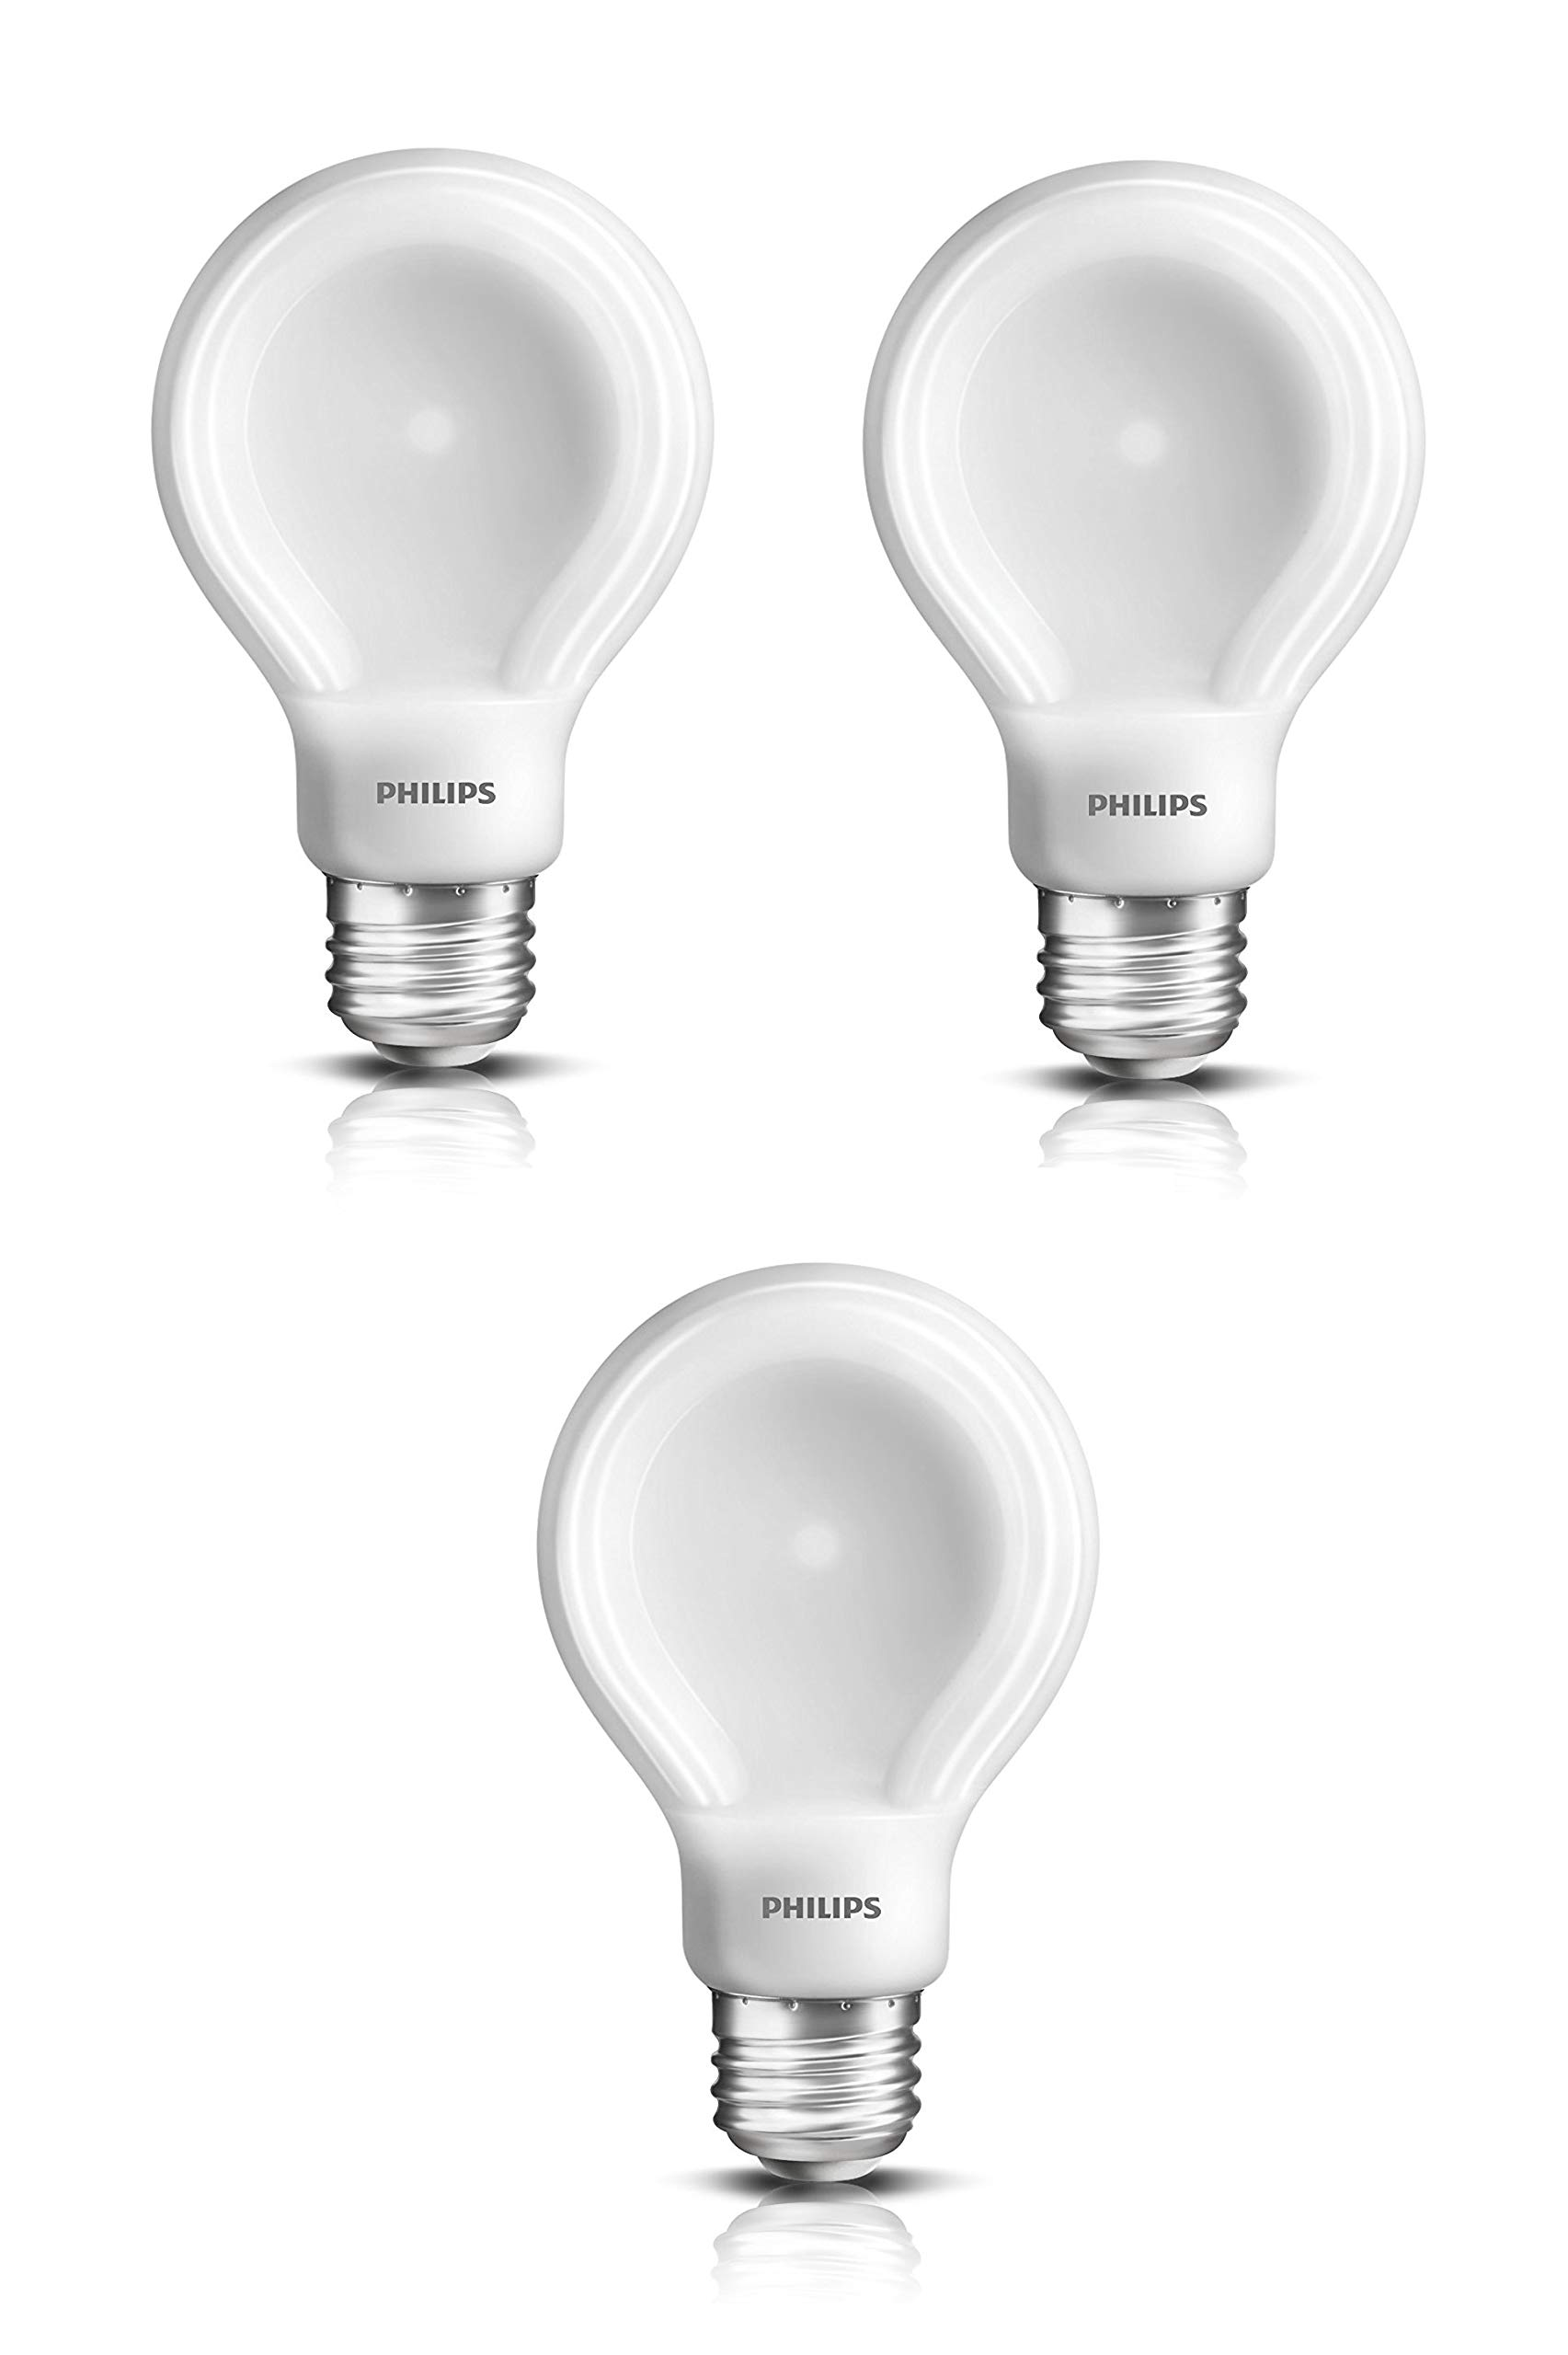 Slim Style Dimmable Philips  433227  10.5 watts LED Bulb 9-pack